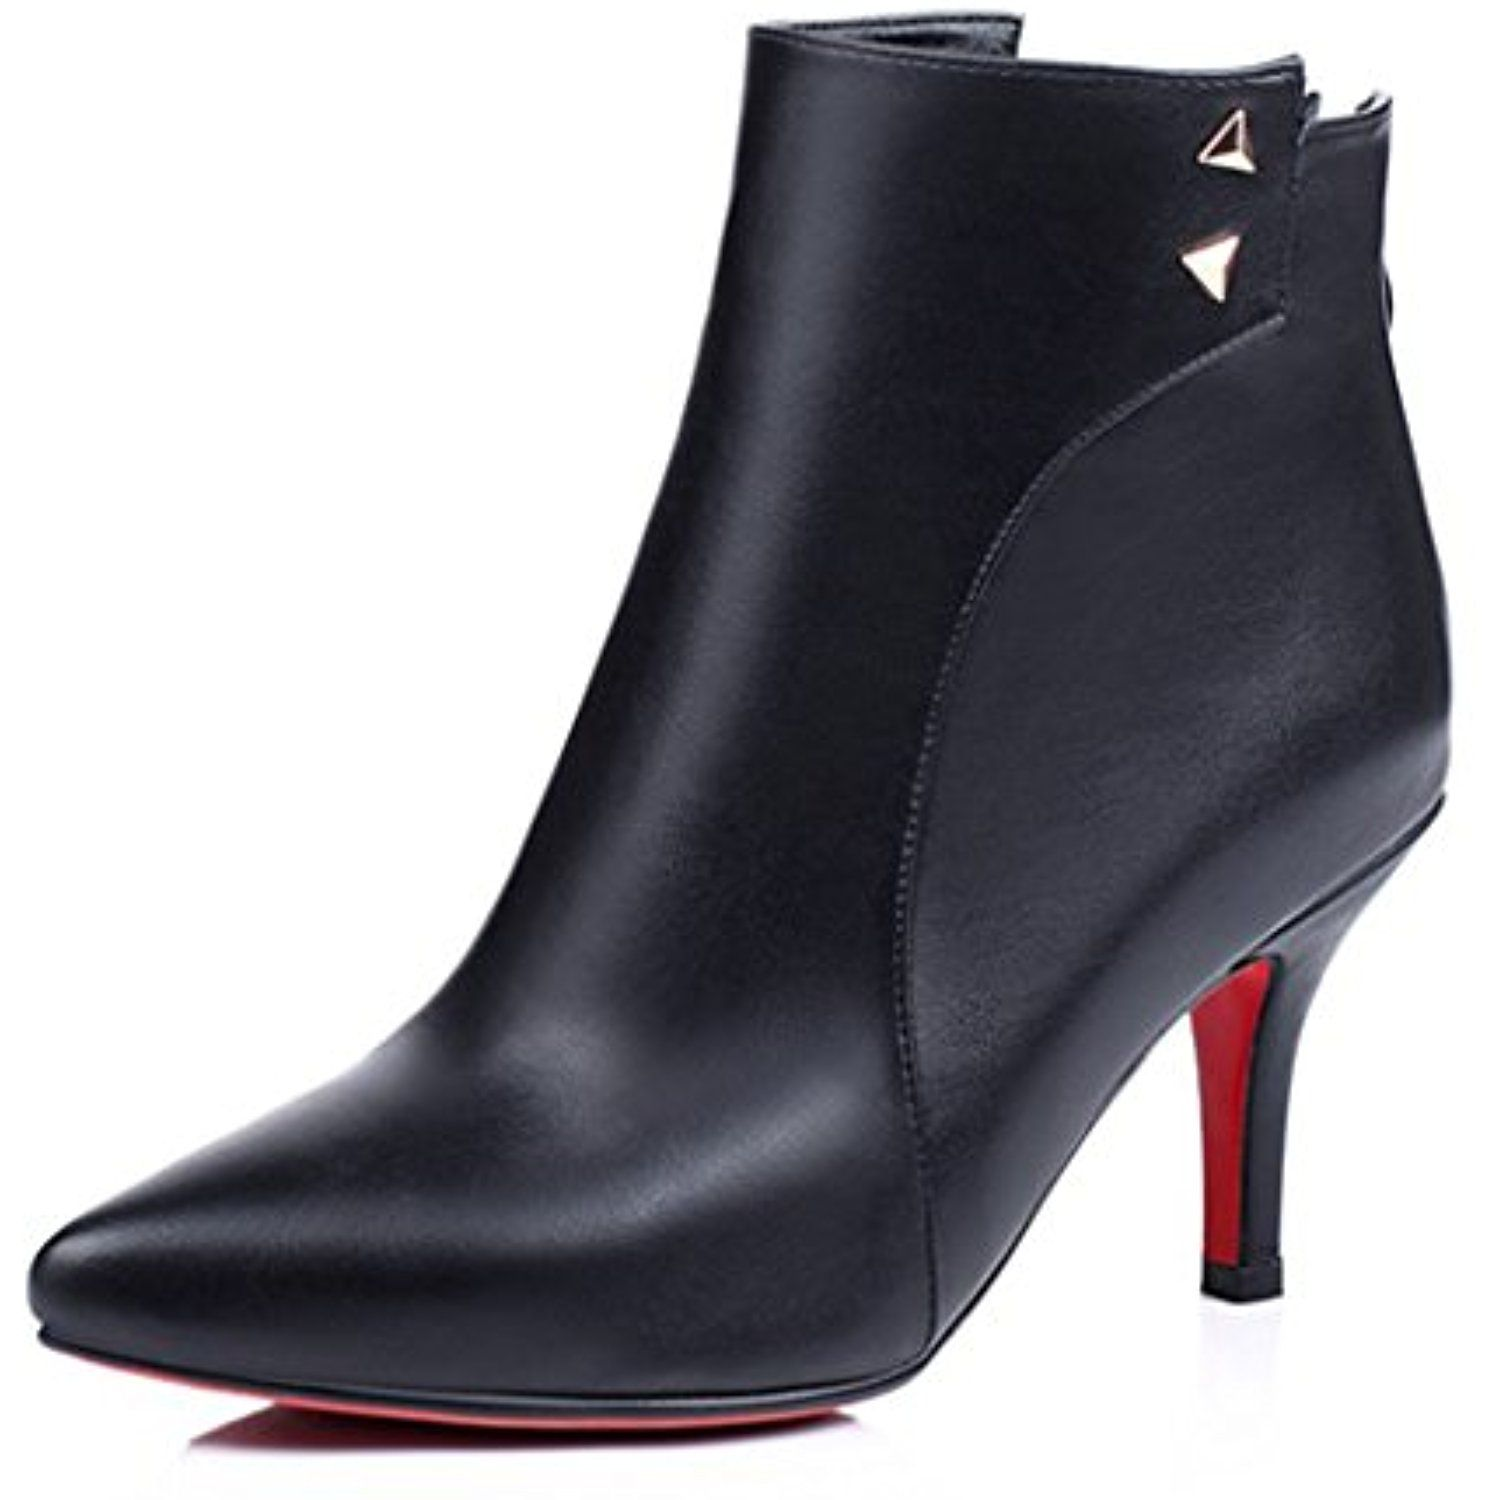 Women's Elegant Pointed Toe Back Zipper Dress Stiletto Kitten Heel Booties Ankle Boots Shoes